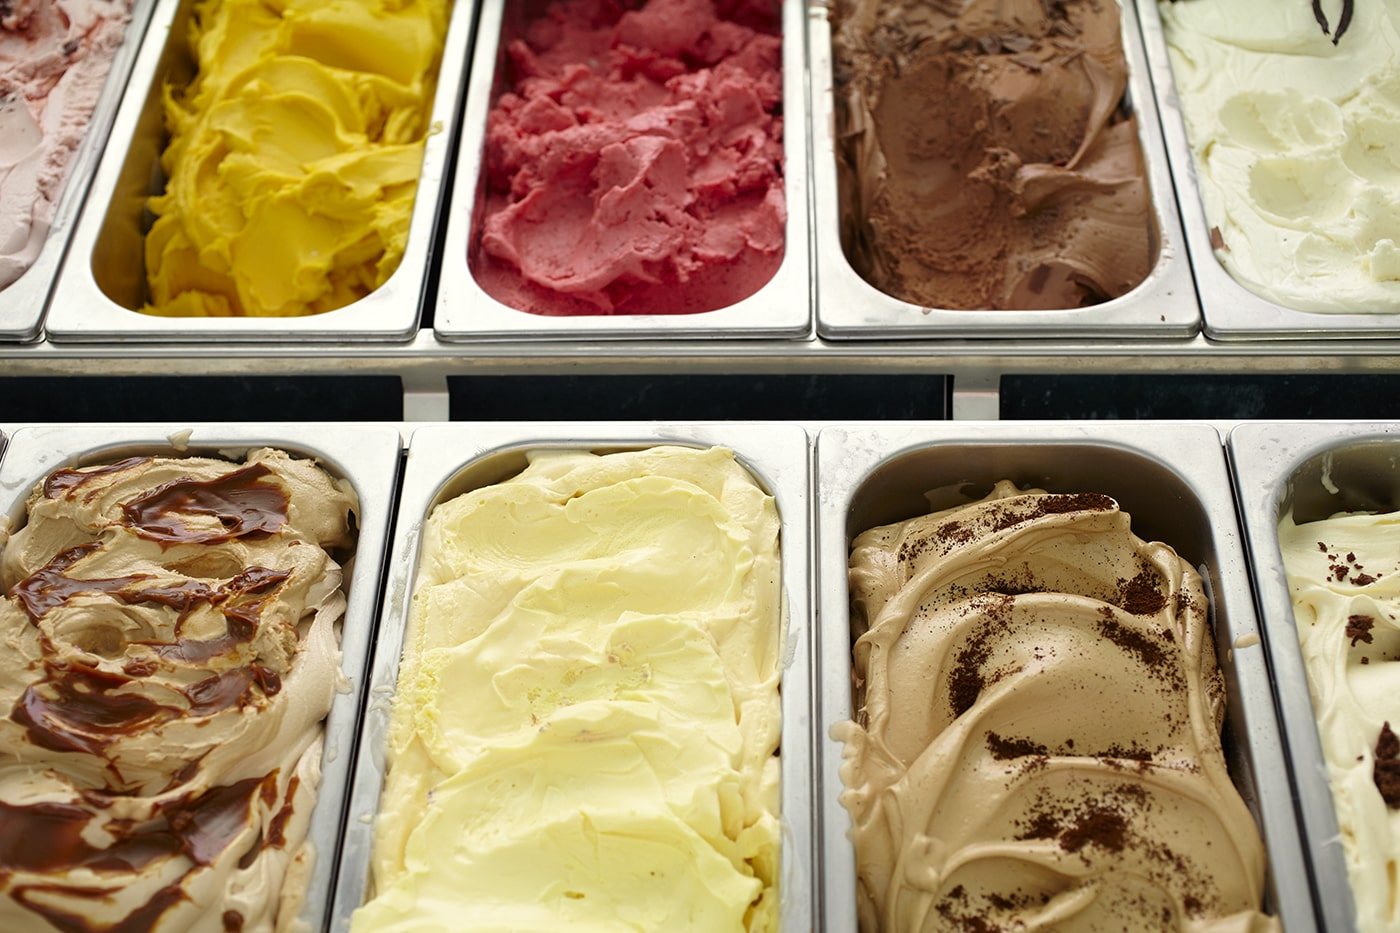 Mrs Jones The Baker gelato and sorbet is made from scratch with all natural Australian dairy and fresh seasonal fruit.